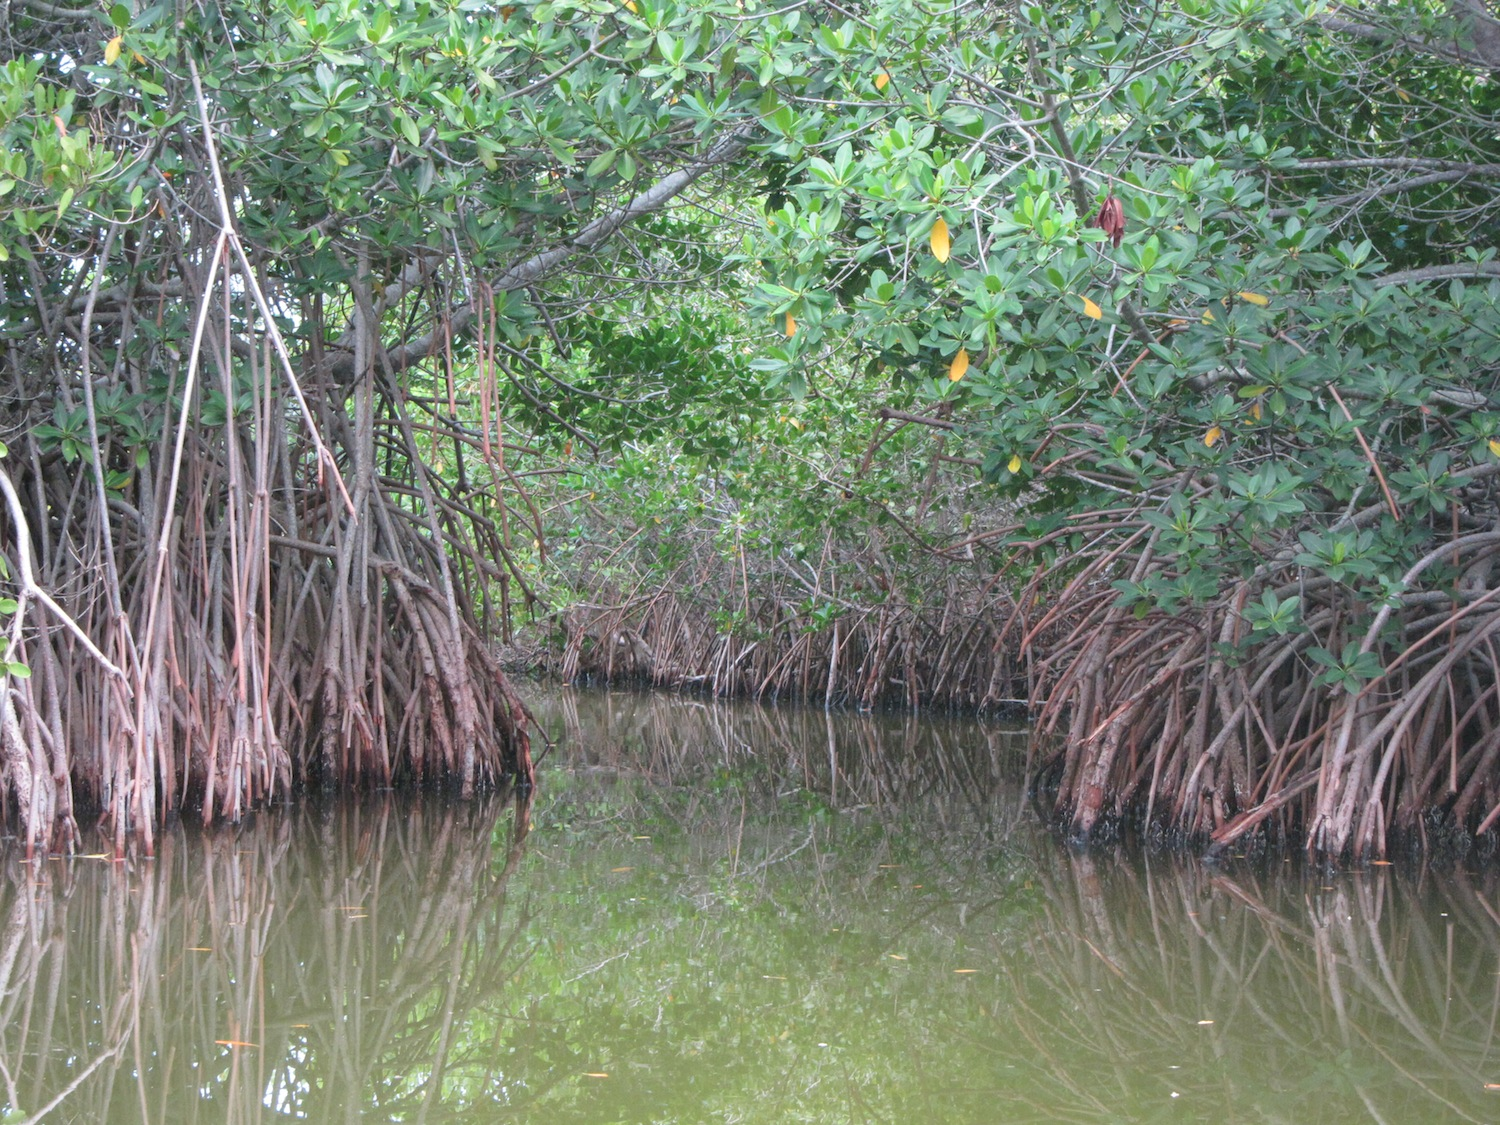 Shorelines » Blog Archive » Mangrove Tracking I: A Forest on the Move